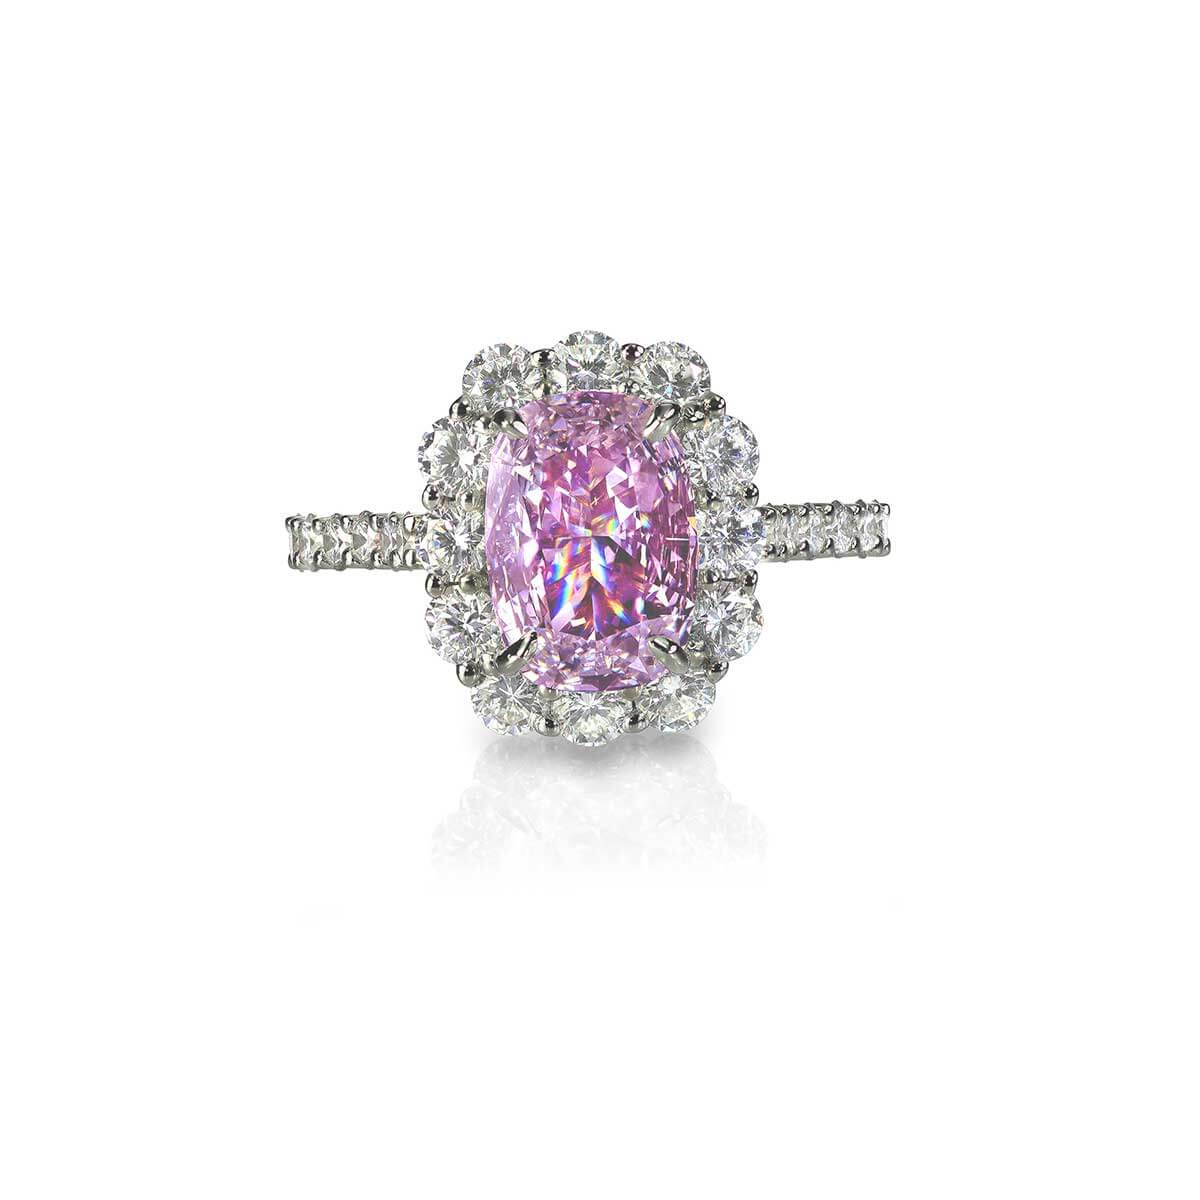 Serenity Pink Diamond Ring